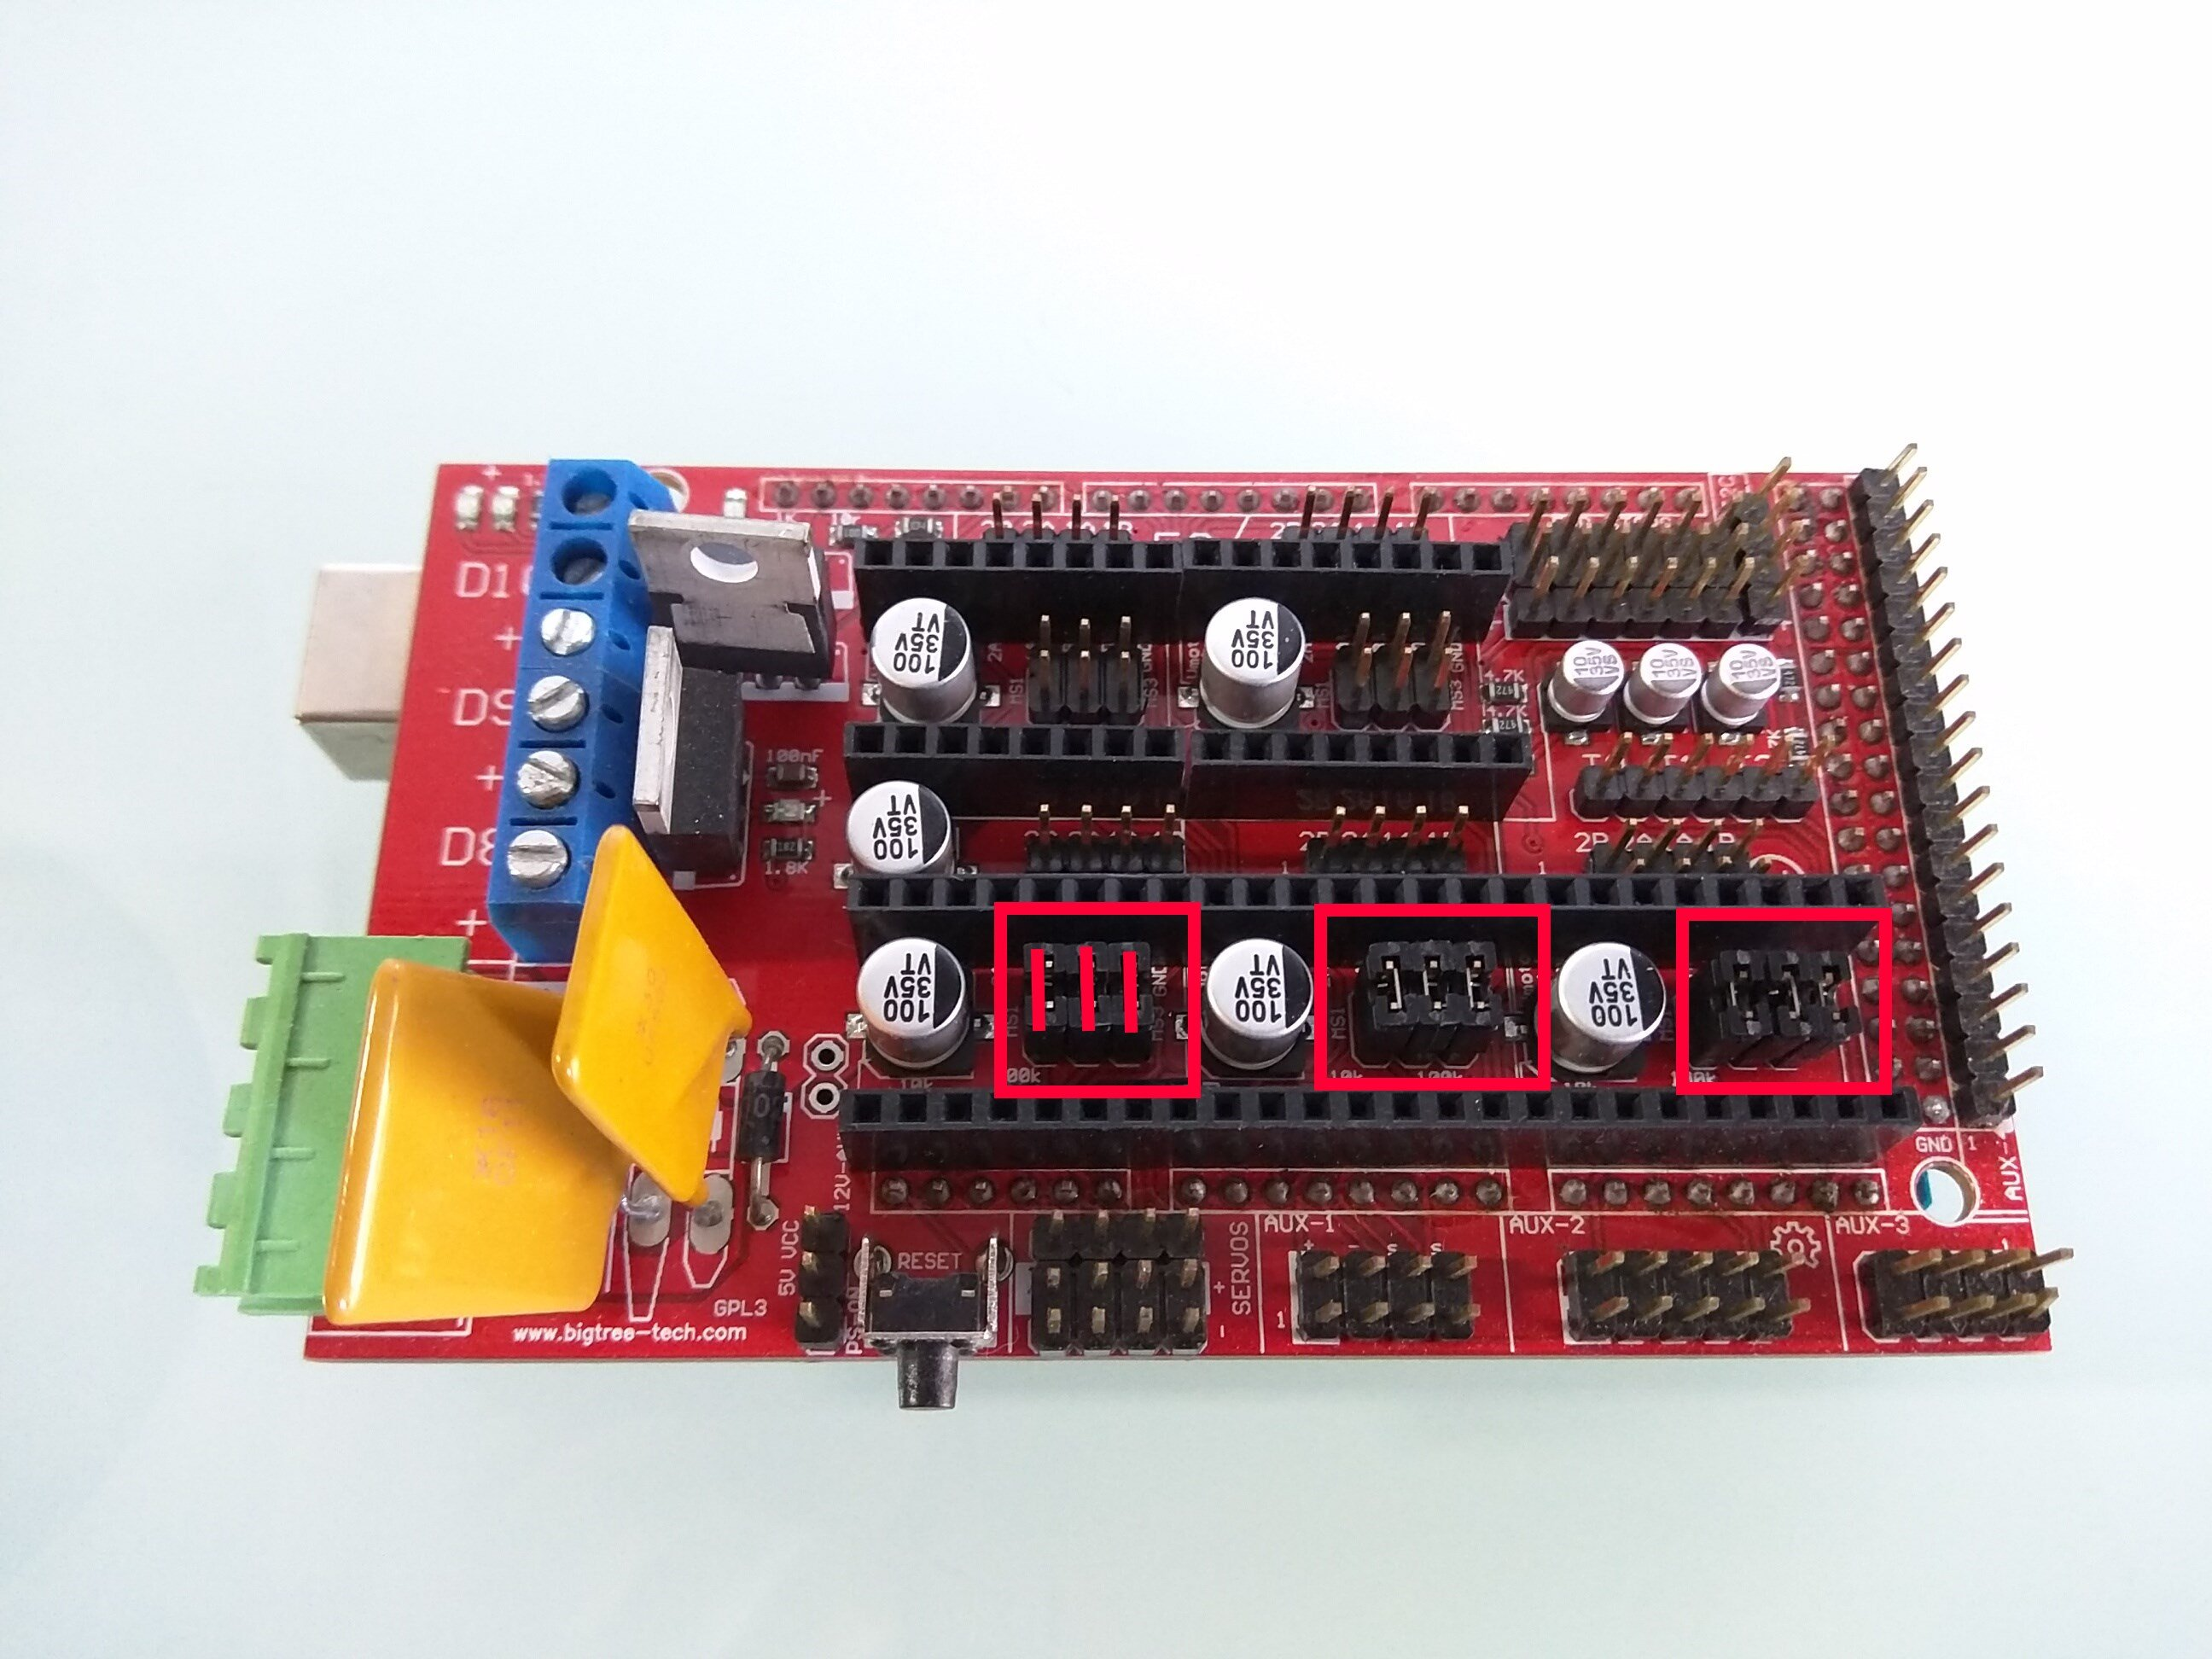 Jumpers – First step is make sure you have 3 jumpers under each stepper  driver. This puts the ramps board into 32nd stepping when using the DRV8825  drivers ...